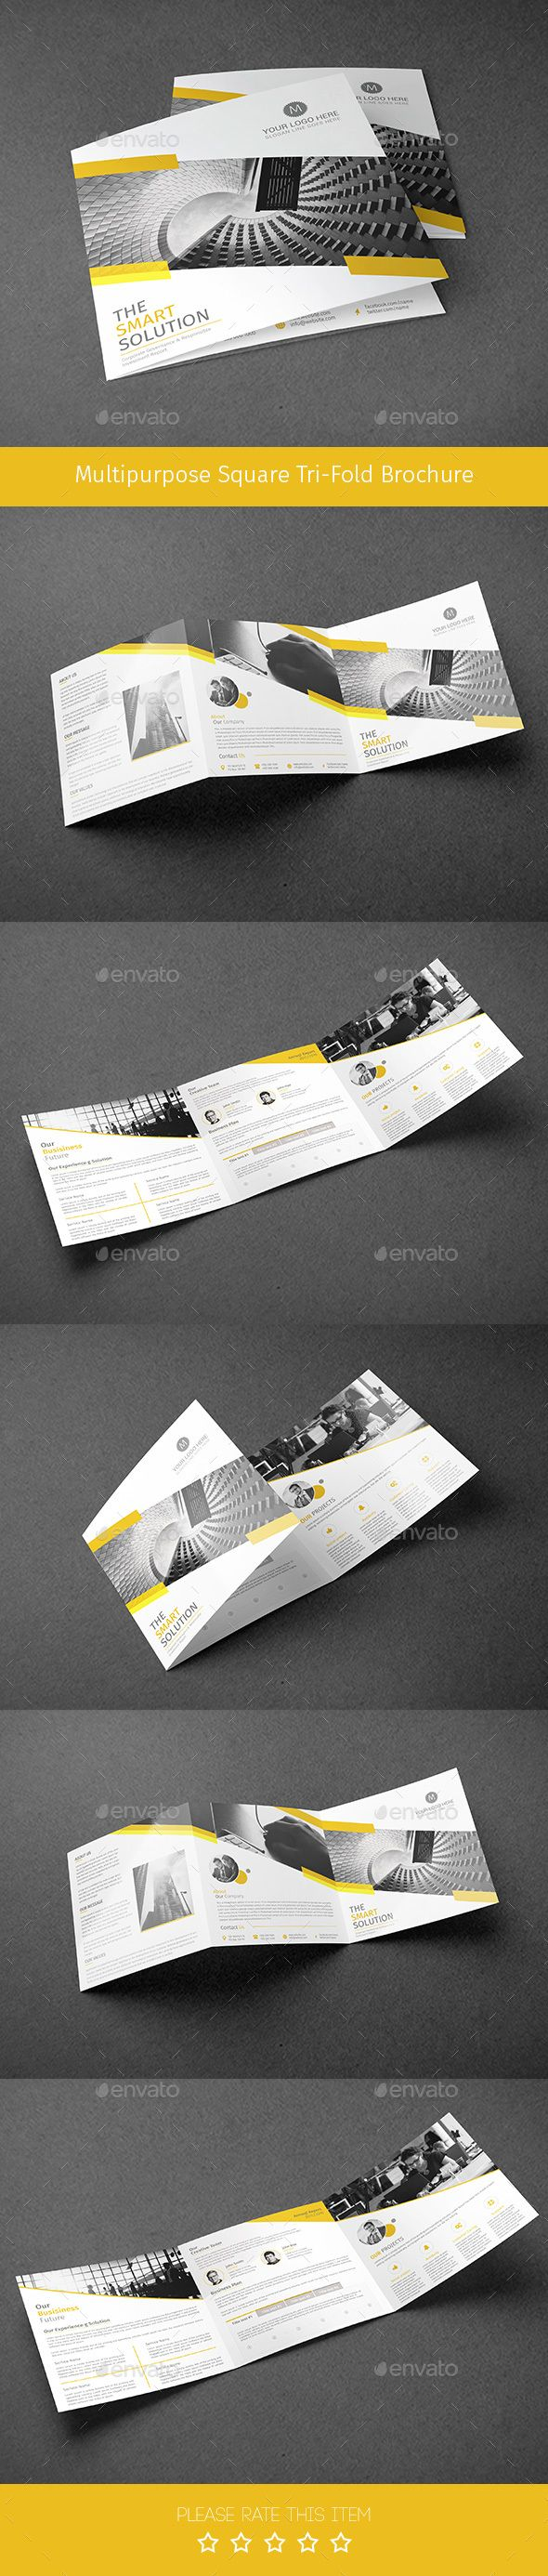 Corporate Tri-fold Square Brochure Template PSD. Download here: http://graphicriver.net/item/corporate-trifold-square-brochure-05/16117377?ref=ksioks